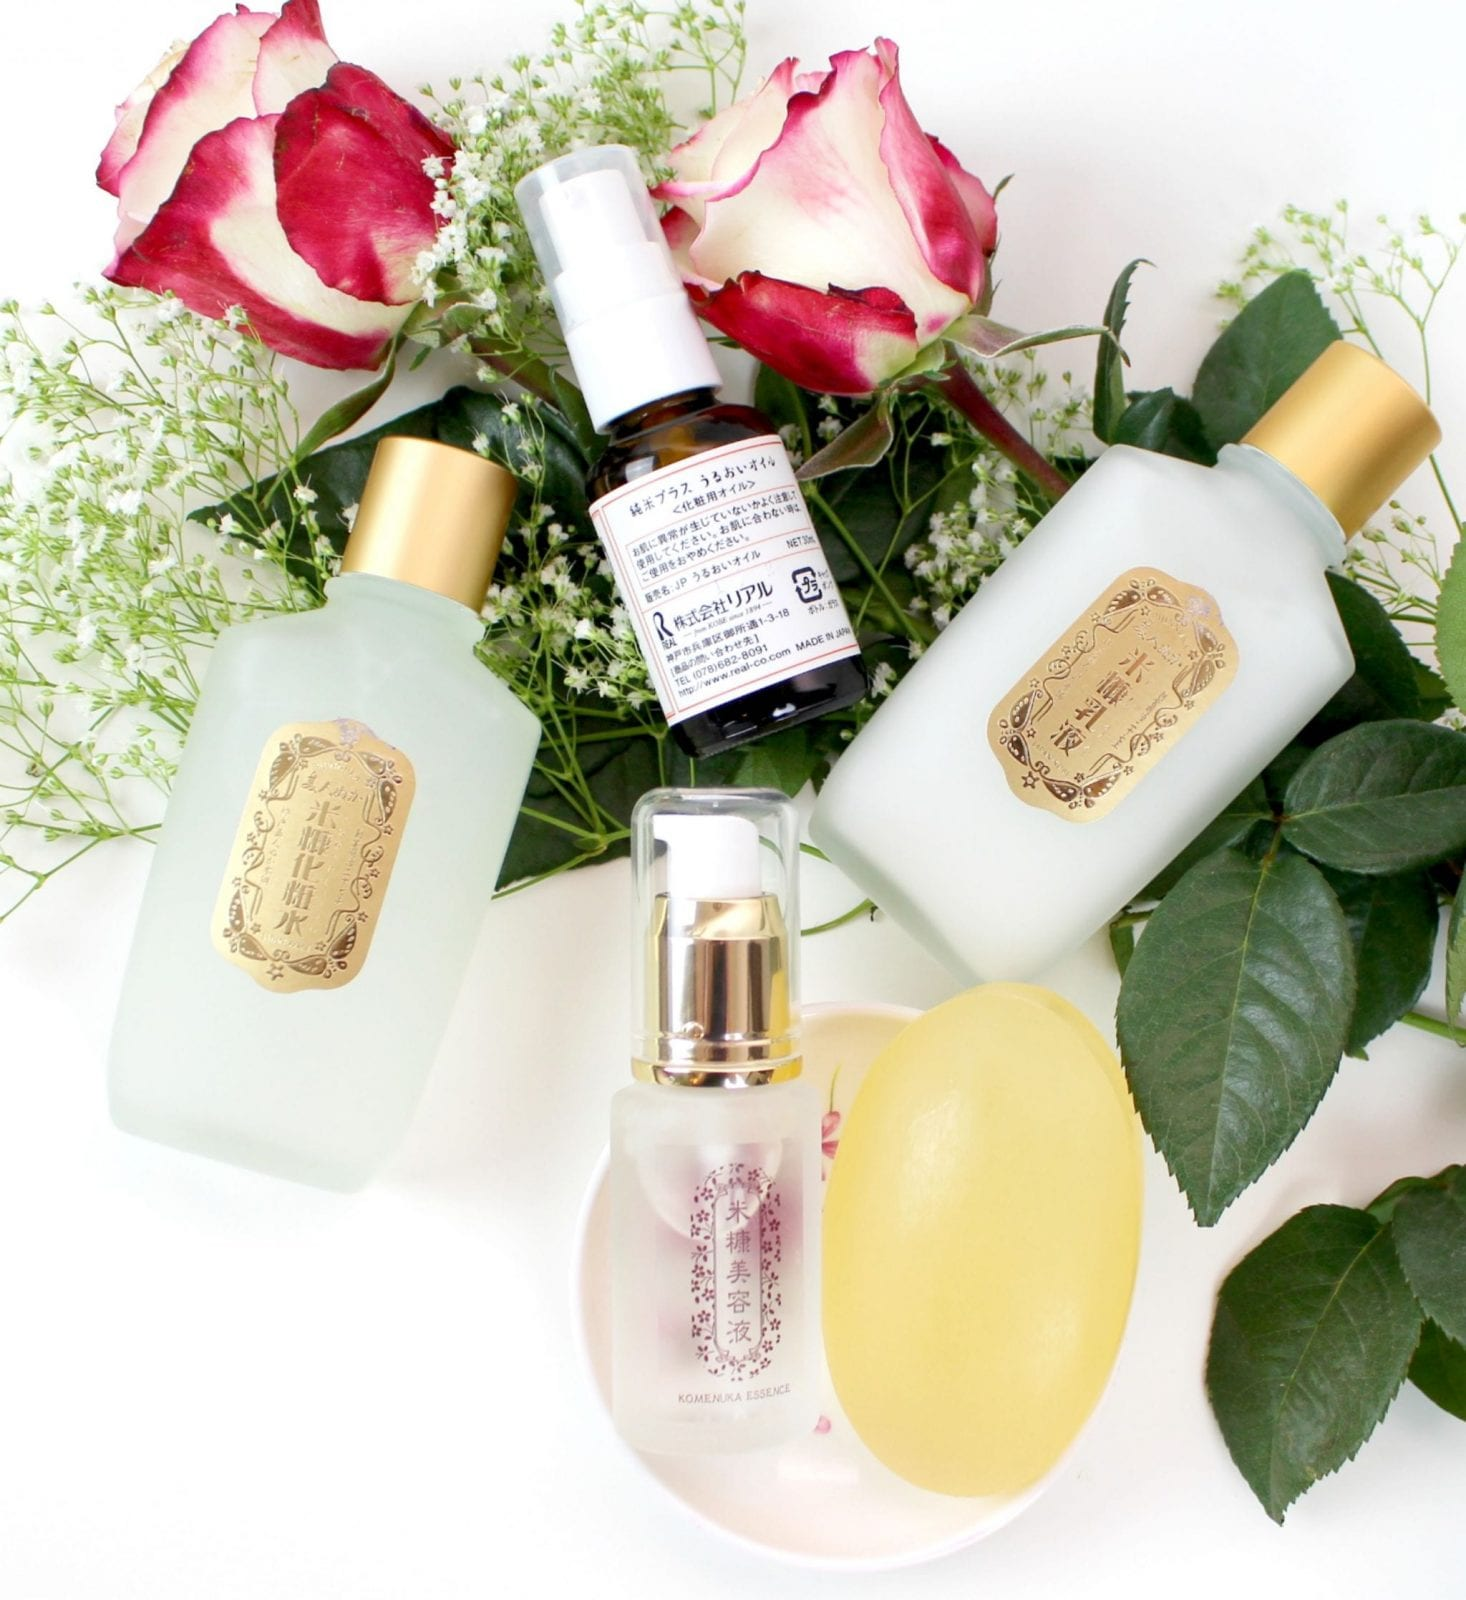 This is a photo of various Japanese skincare products from Ninjaya dot com, an online store selling all kinds of unique Japanese products.